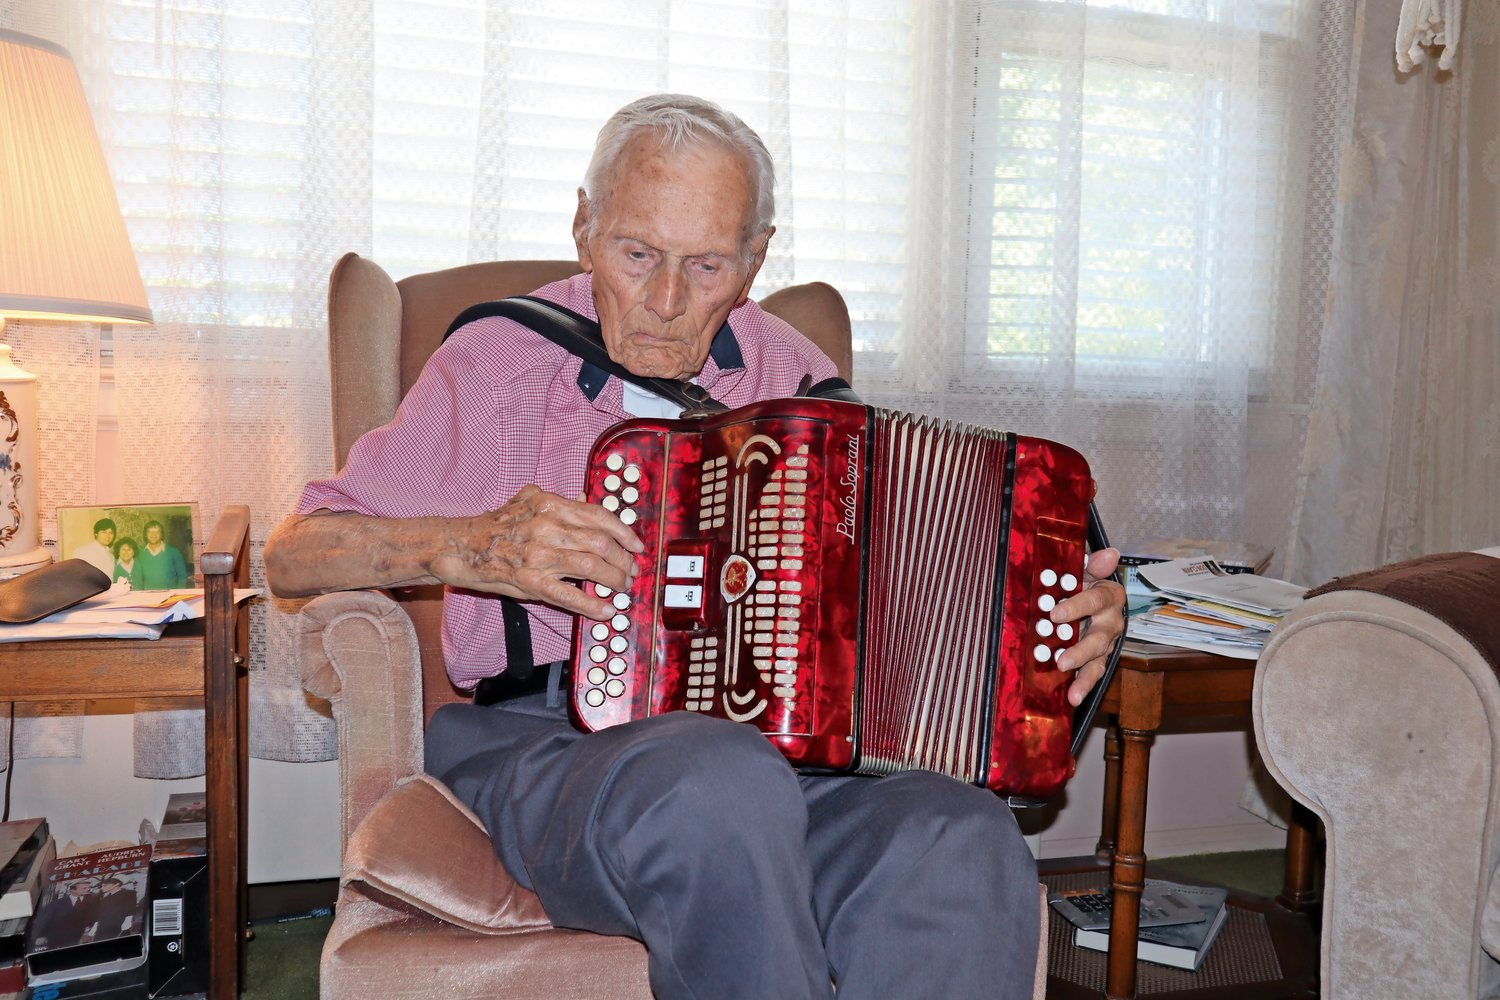 Andrew Conlin, of North Merrick, practices the accordion regularly, even at (almost) 100.